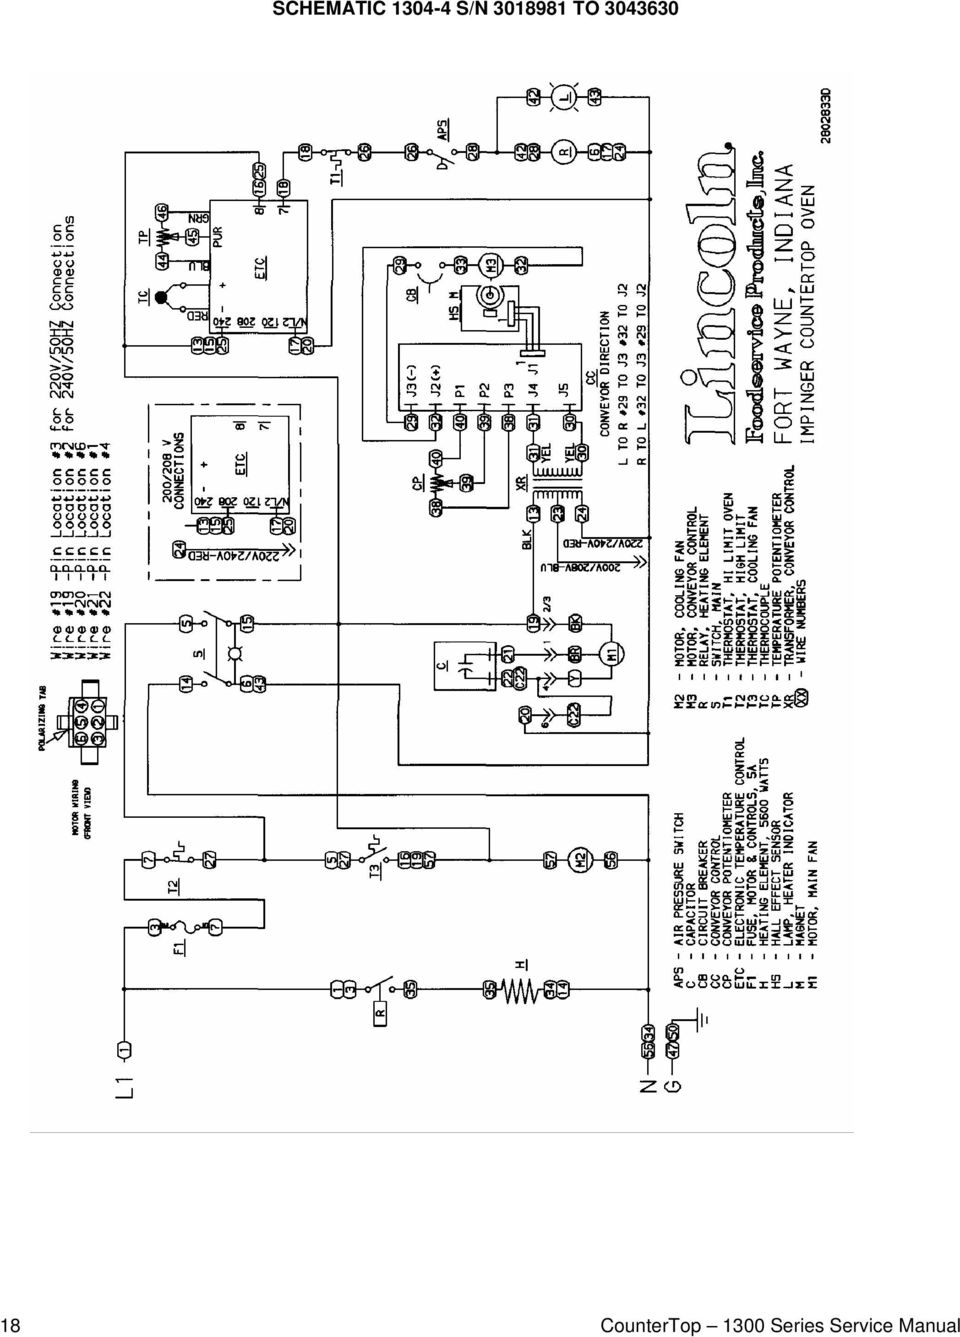 Radiator Fan Temp Switch Wiring Diagram additionally Wiring Diagram For 2003 Santa Fe Air Conditioner Condenser Fan further 2004 Pt Cruiser Fan Relay Location together with Chrysler 300 Oil Filter Location together with Chrysler Pt Cruiser 2001 2005 Fuse Box Diagram. on 2006 pt cruiser cooling fan relay